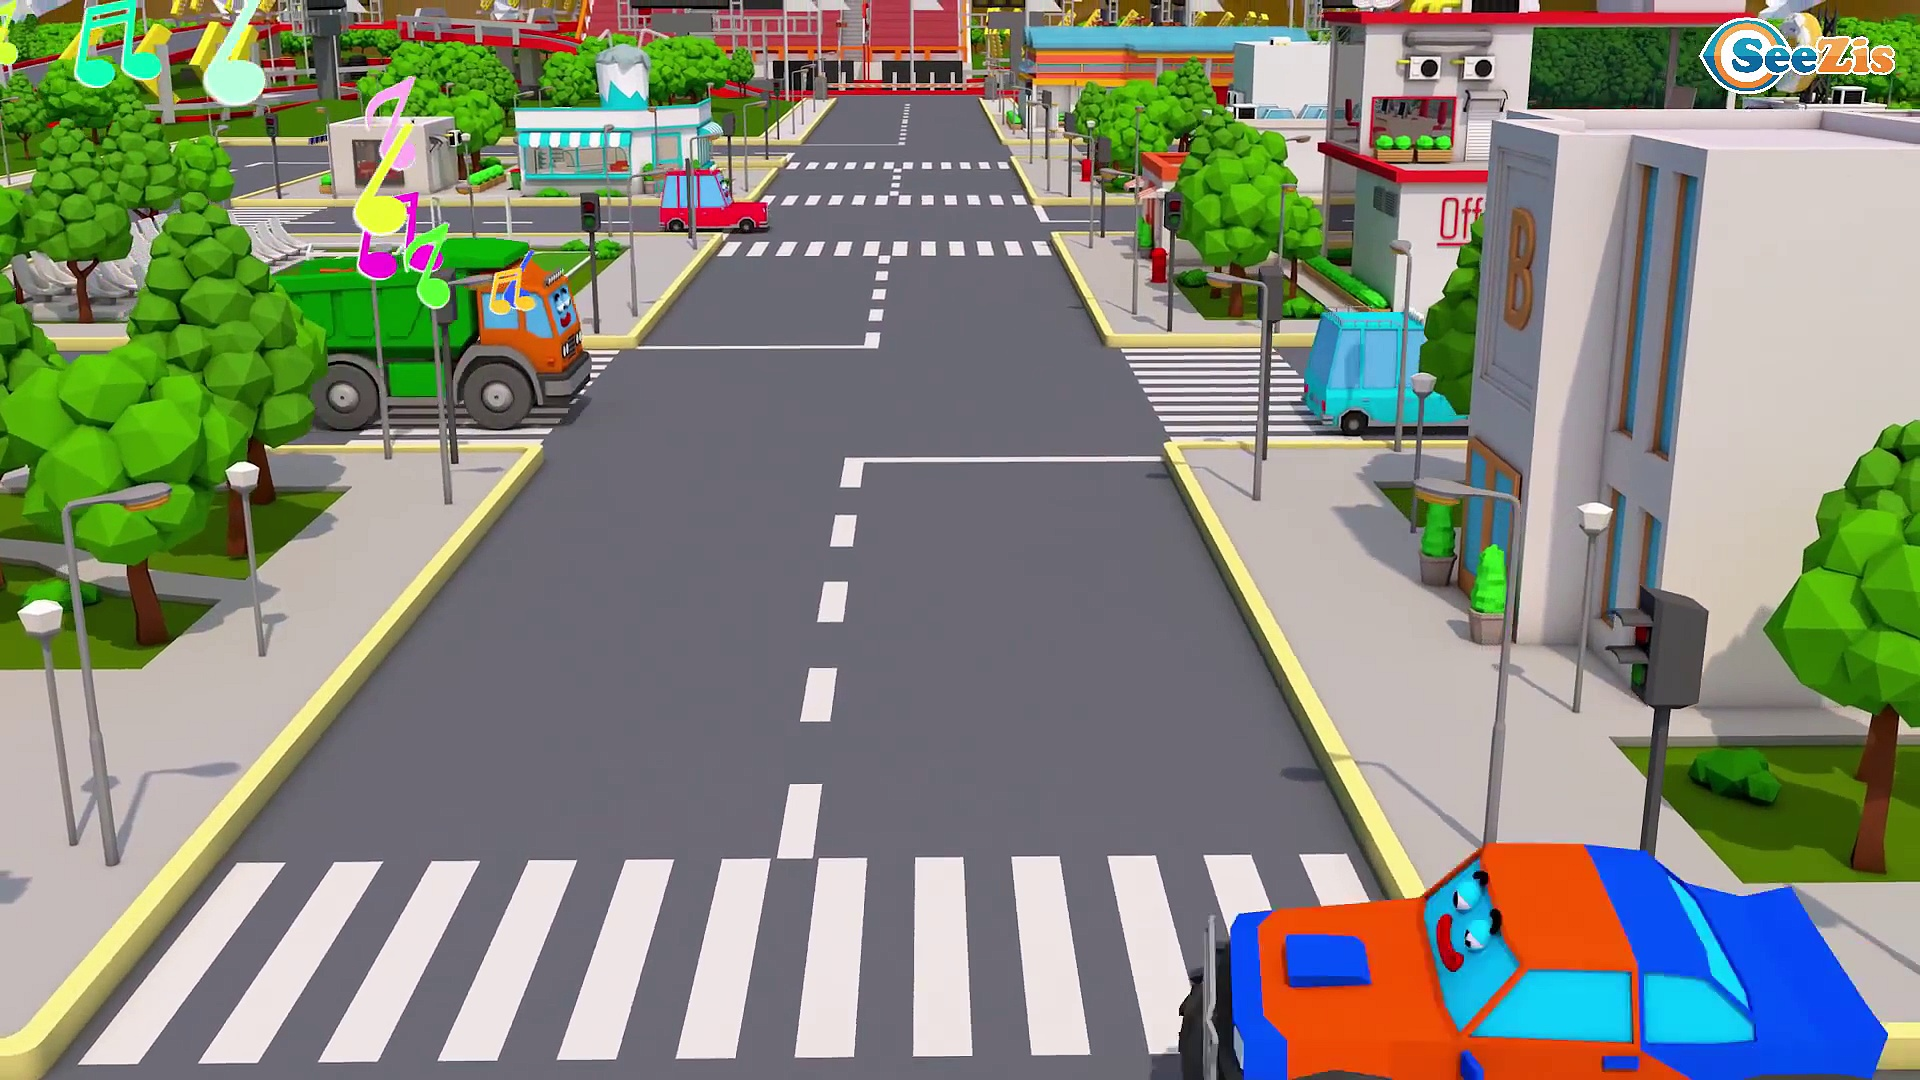 Super Truck and Color Cars and Trucks in Trucks City 3D Animation | Cars & Trucks Stories